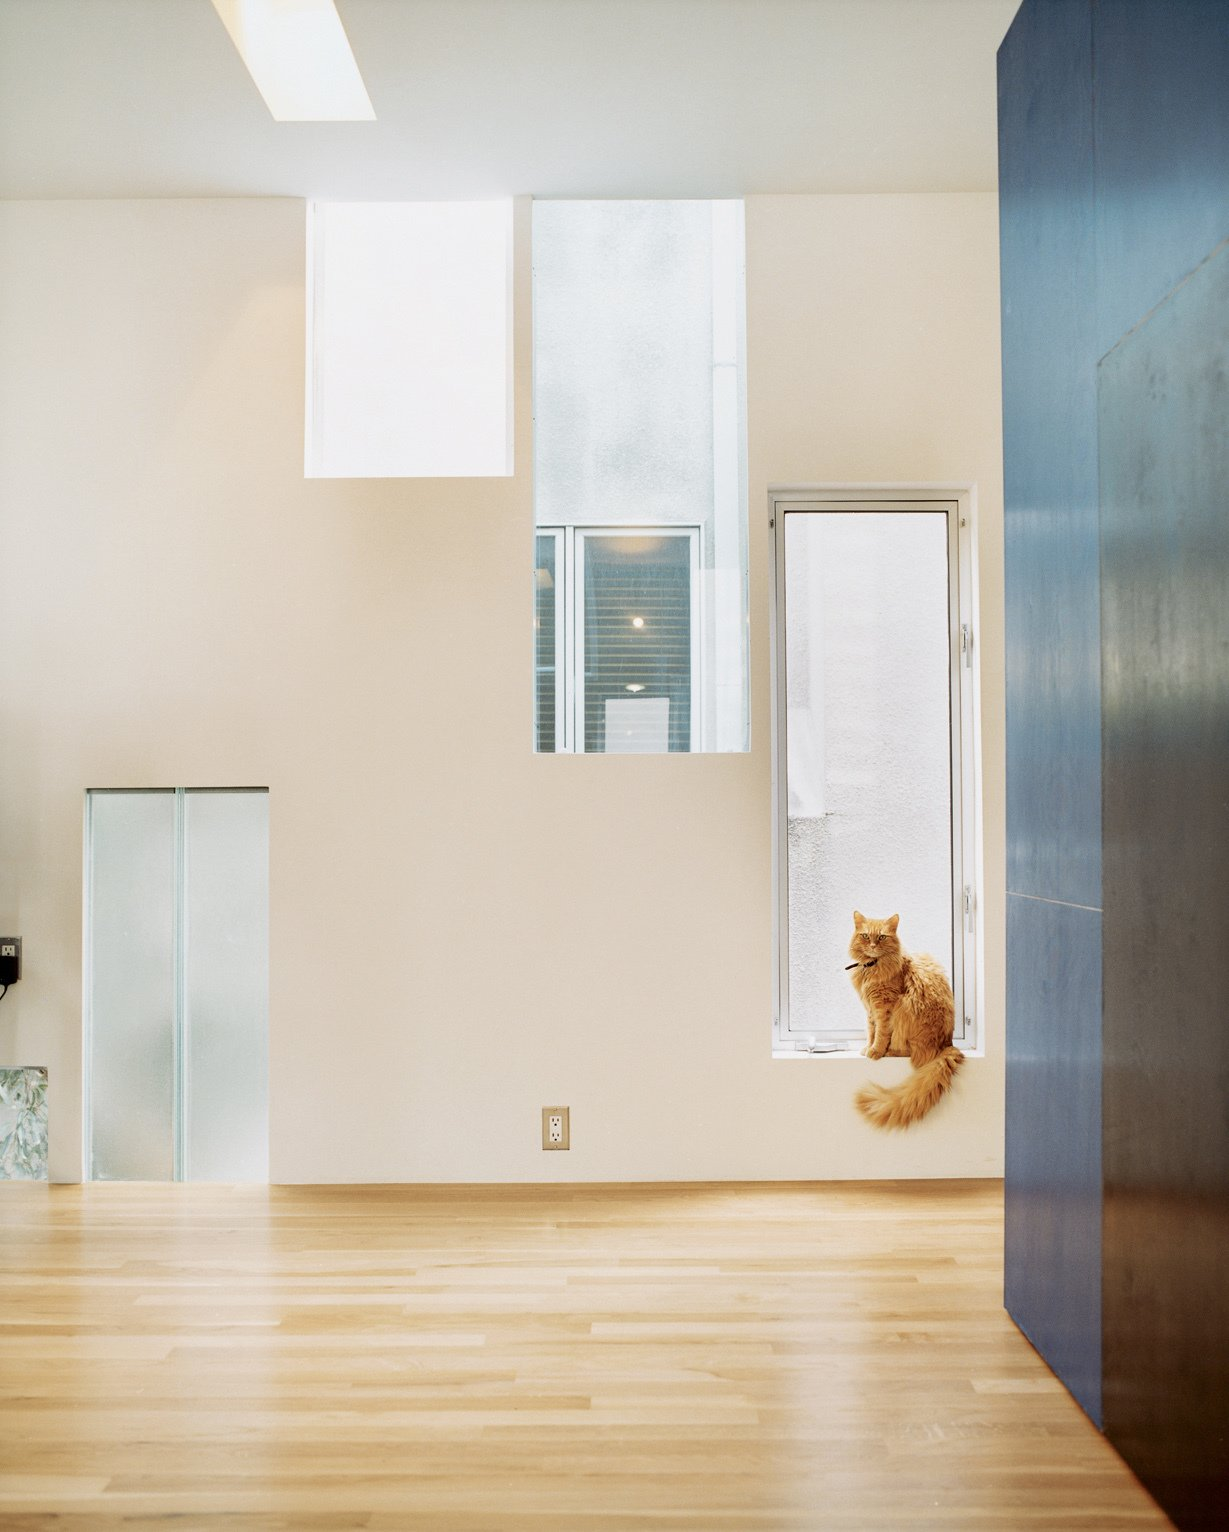 Windows transcend floor levels to discretely frame views of the surrounding neighborhood, offering slices of the vistas beyond. Tagged: Windows, Picture Window Type, and Metal.  Photo 14 of 21 in 21 Cats Living in the Modern World from Kaleidoscopic Cabinet